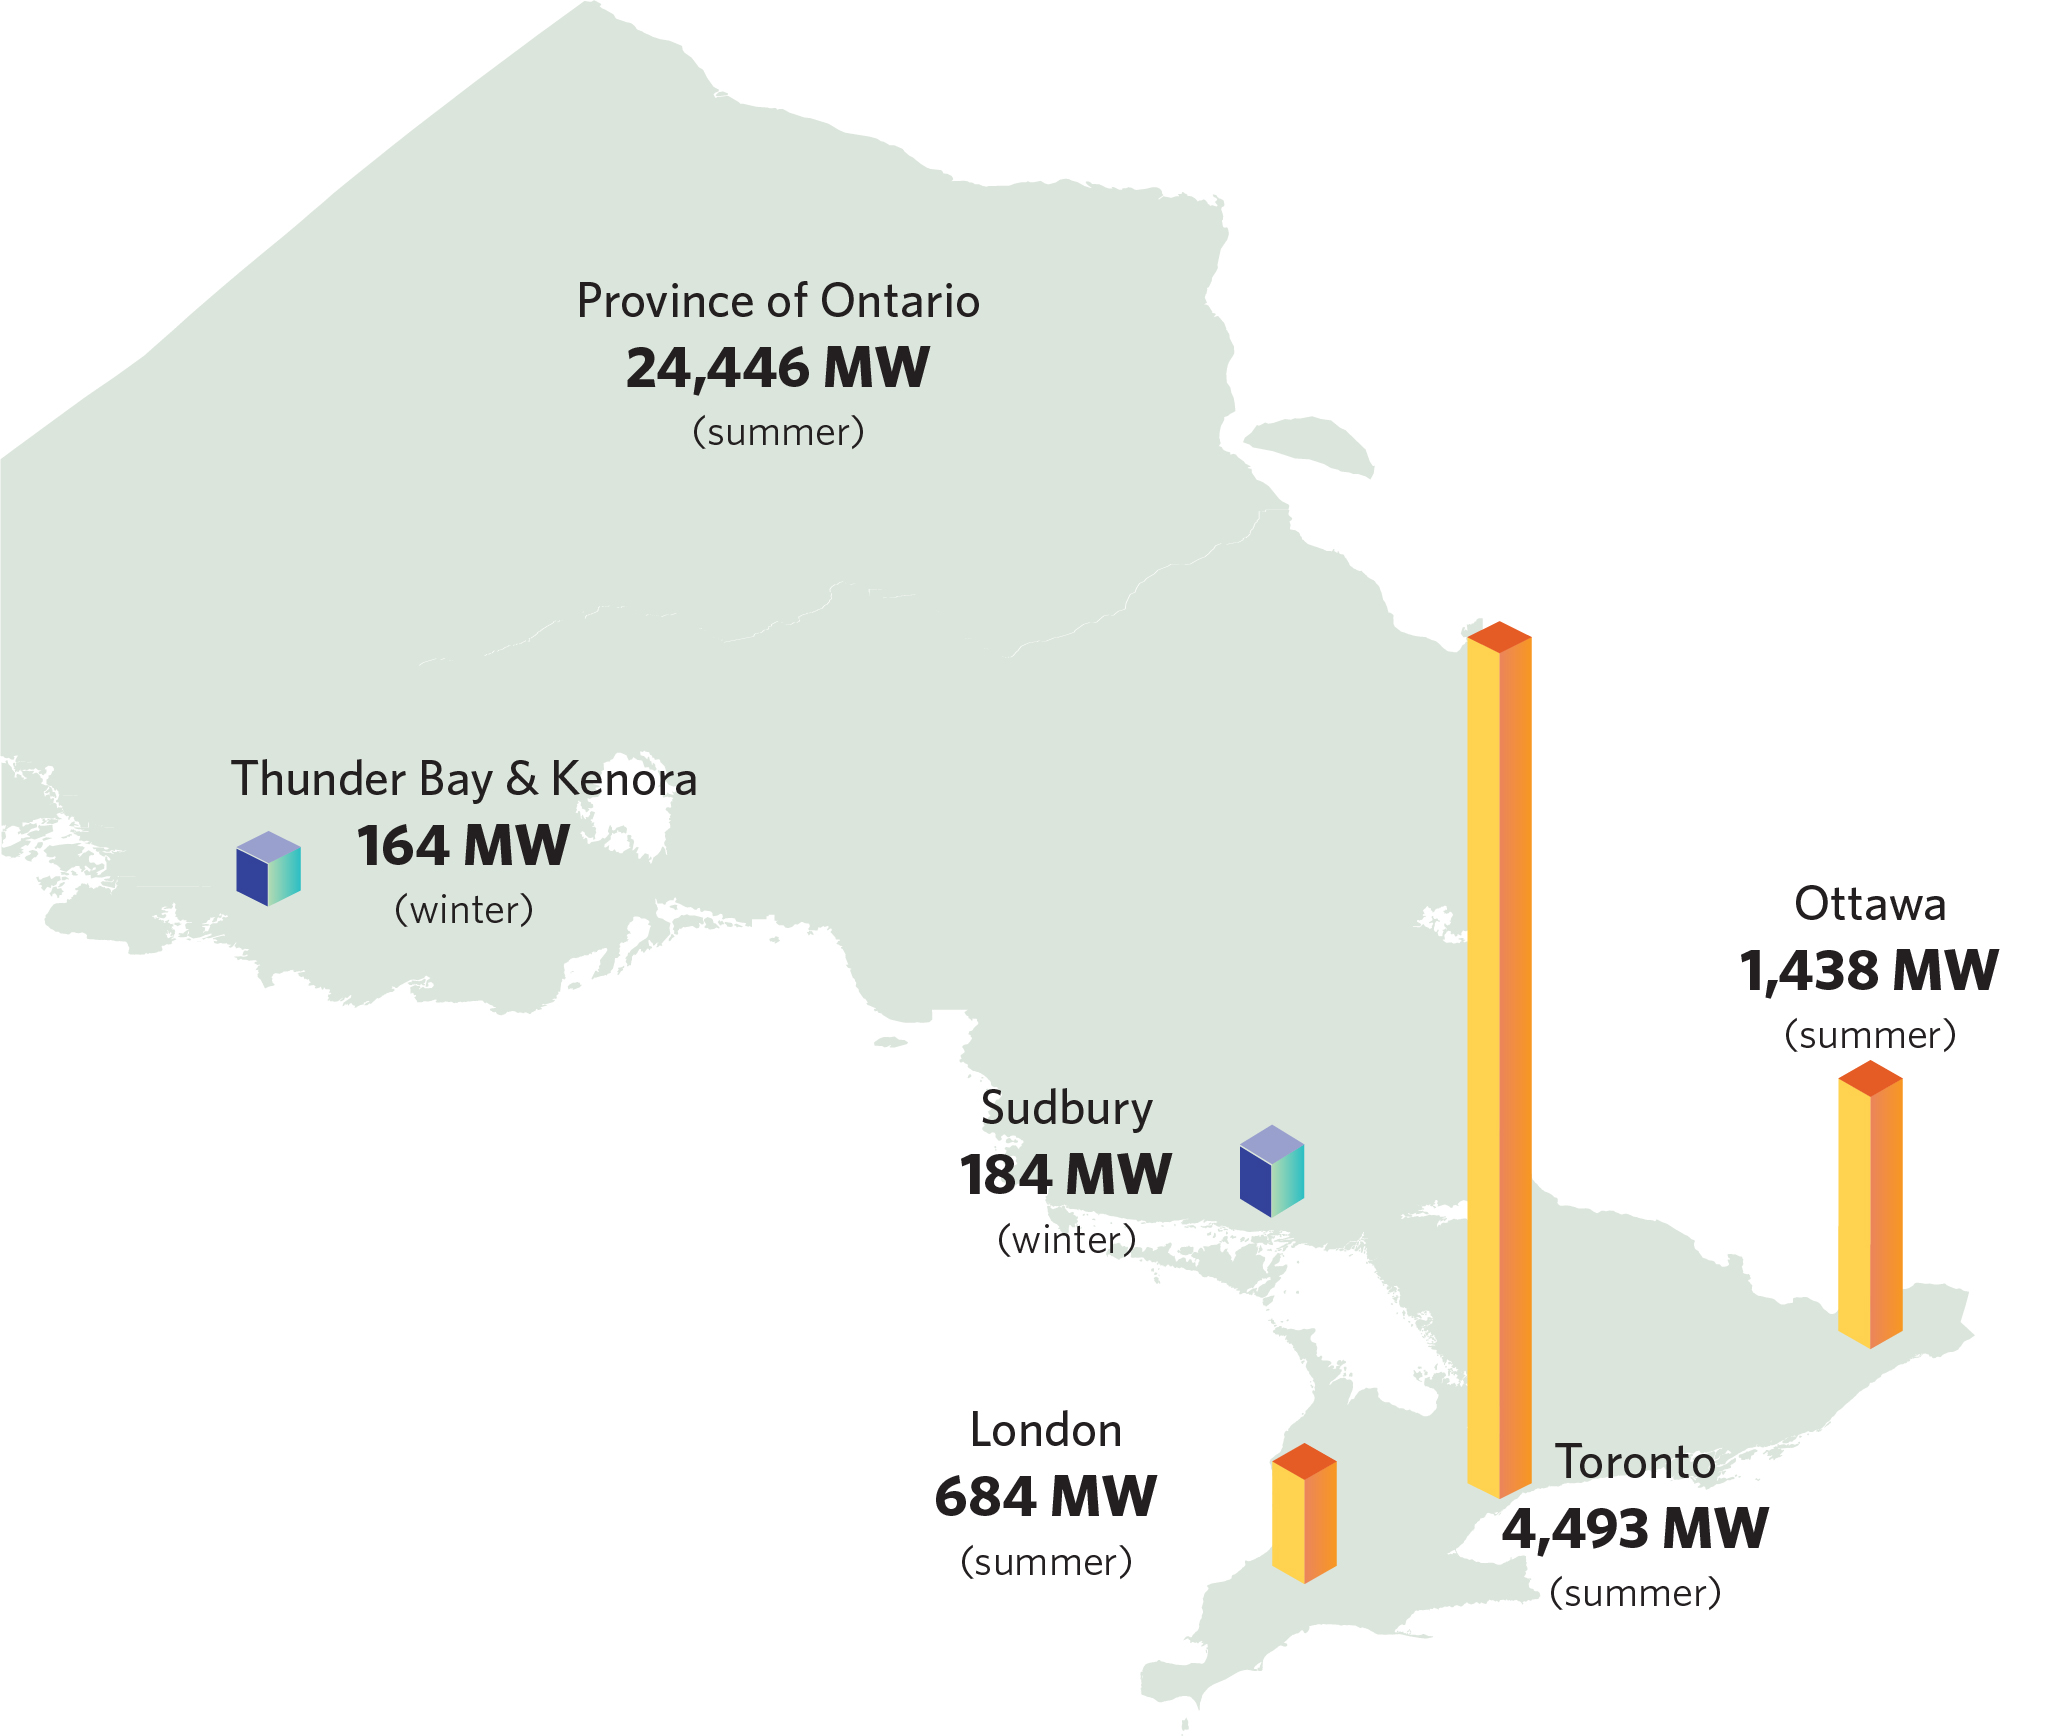 Ontario Map showing Peak Demand by City, Source: Ontario Energy Board Yearbook